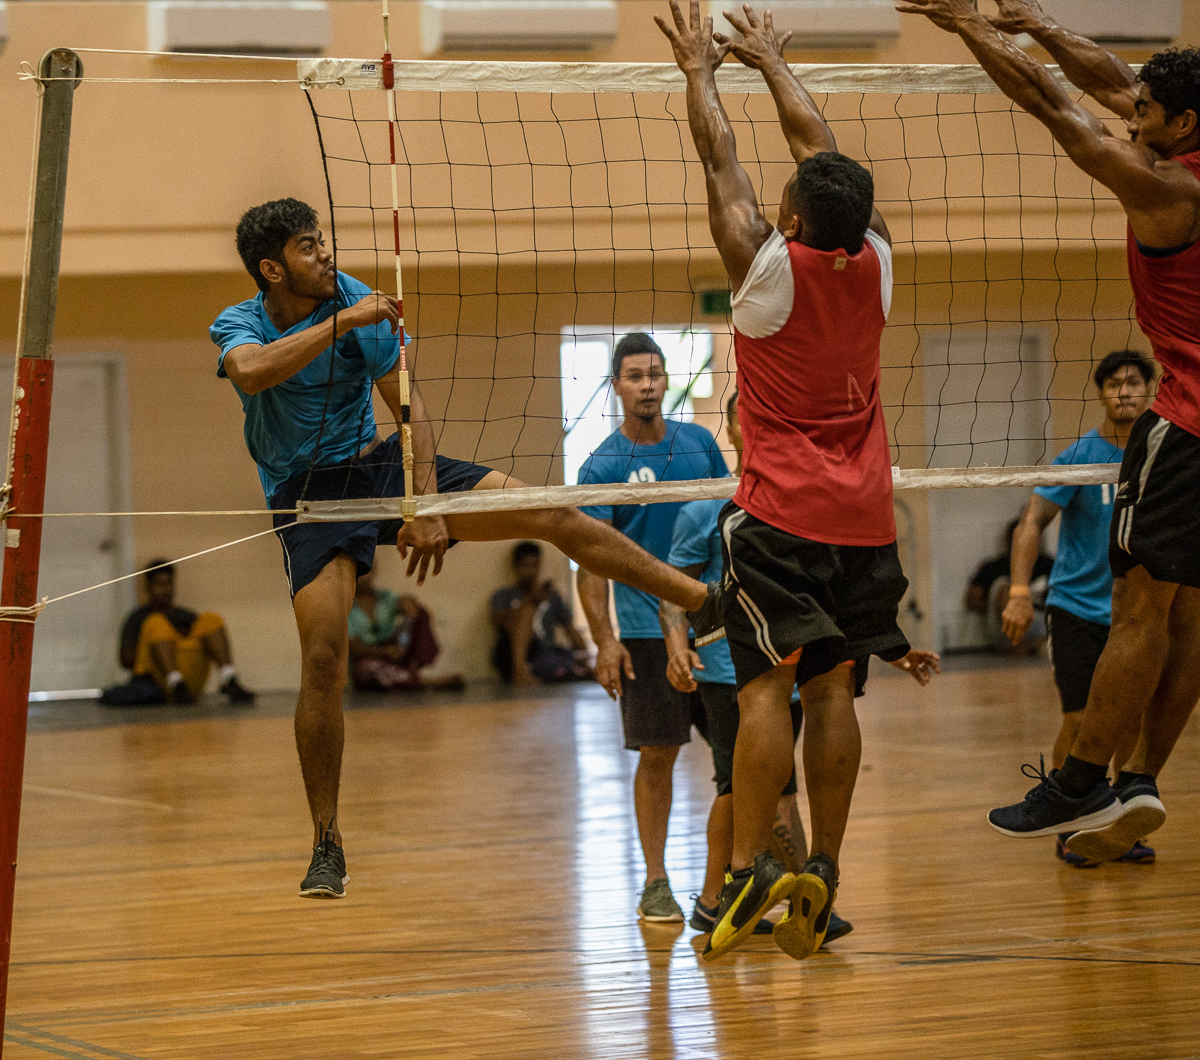 VOLLEYBALL OFFICIALS FOR PACIFIC GAMES STILL NEED TO TIGHTEN UP ON THEIR ROLES AND RESPONSIBILITIES, TECHNICAL DELEGATE SAYS